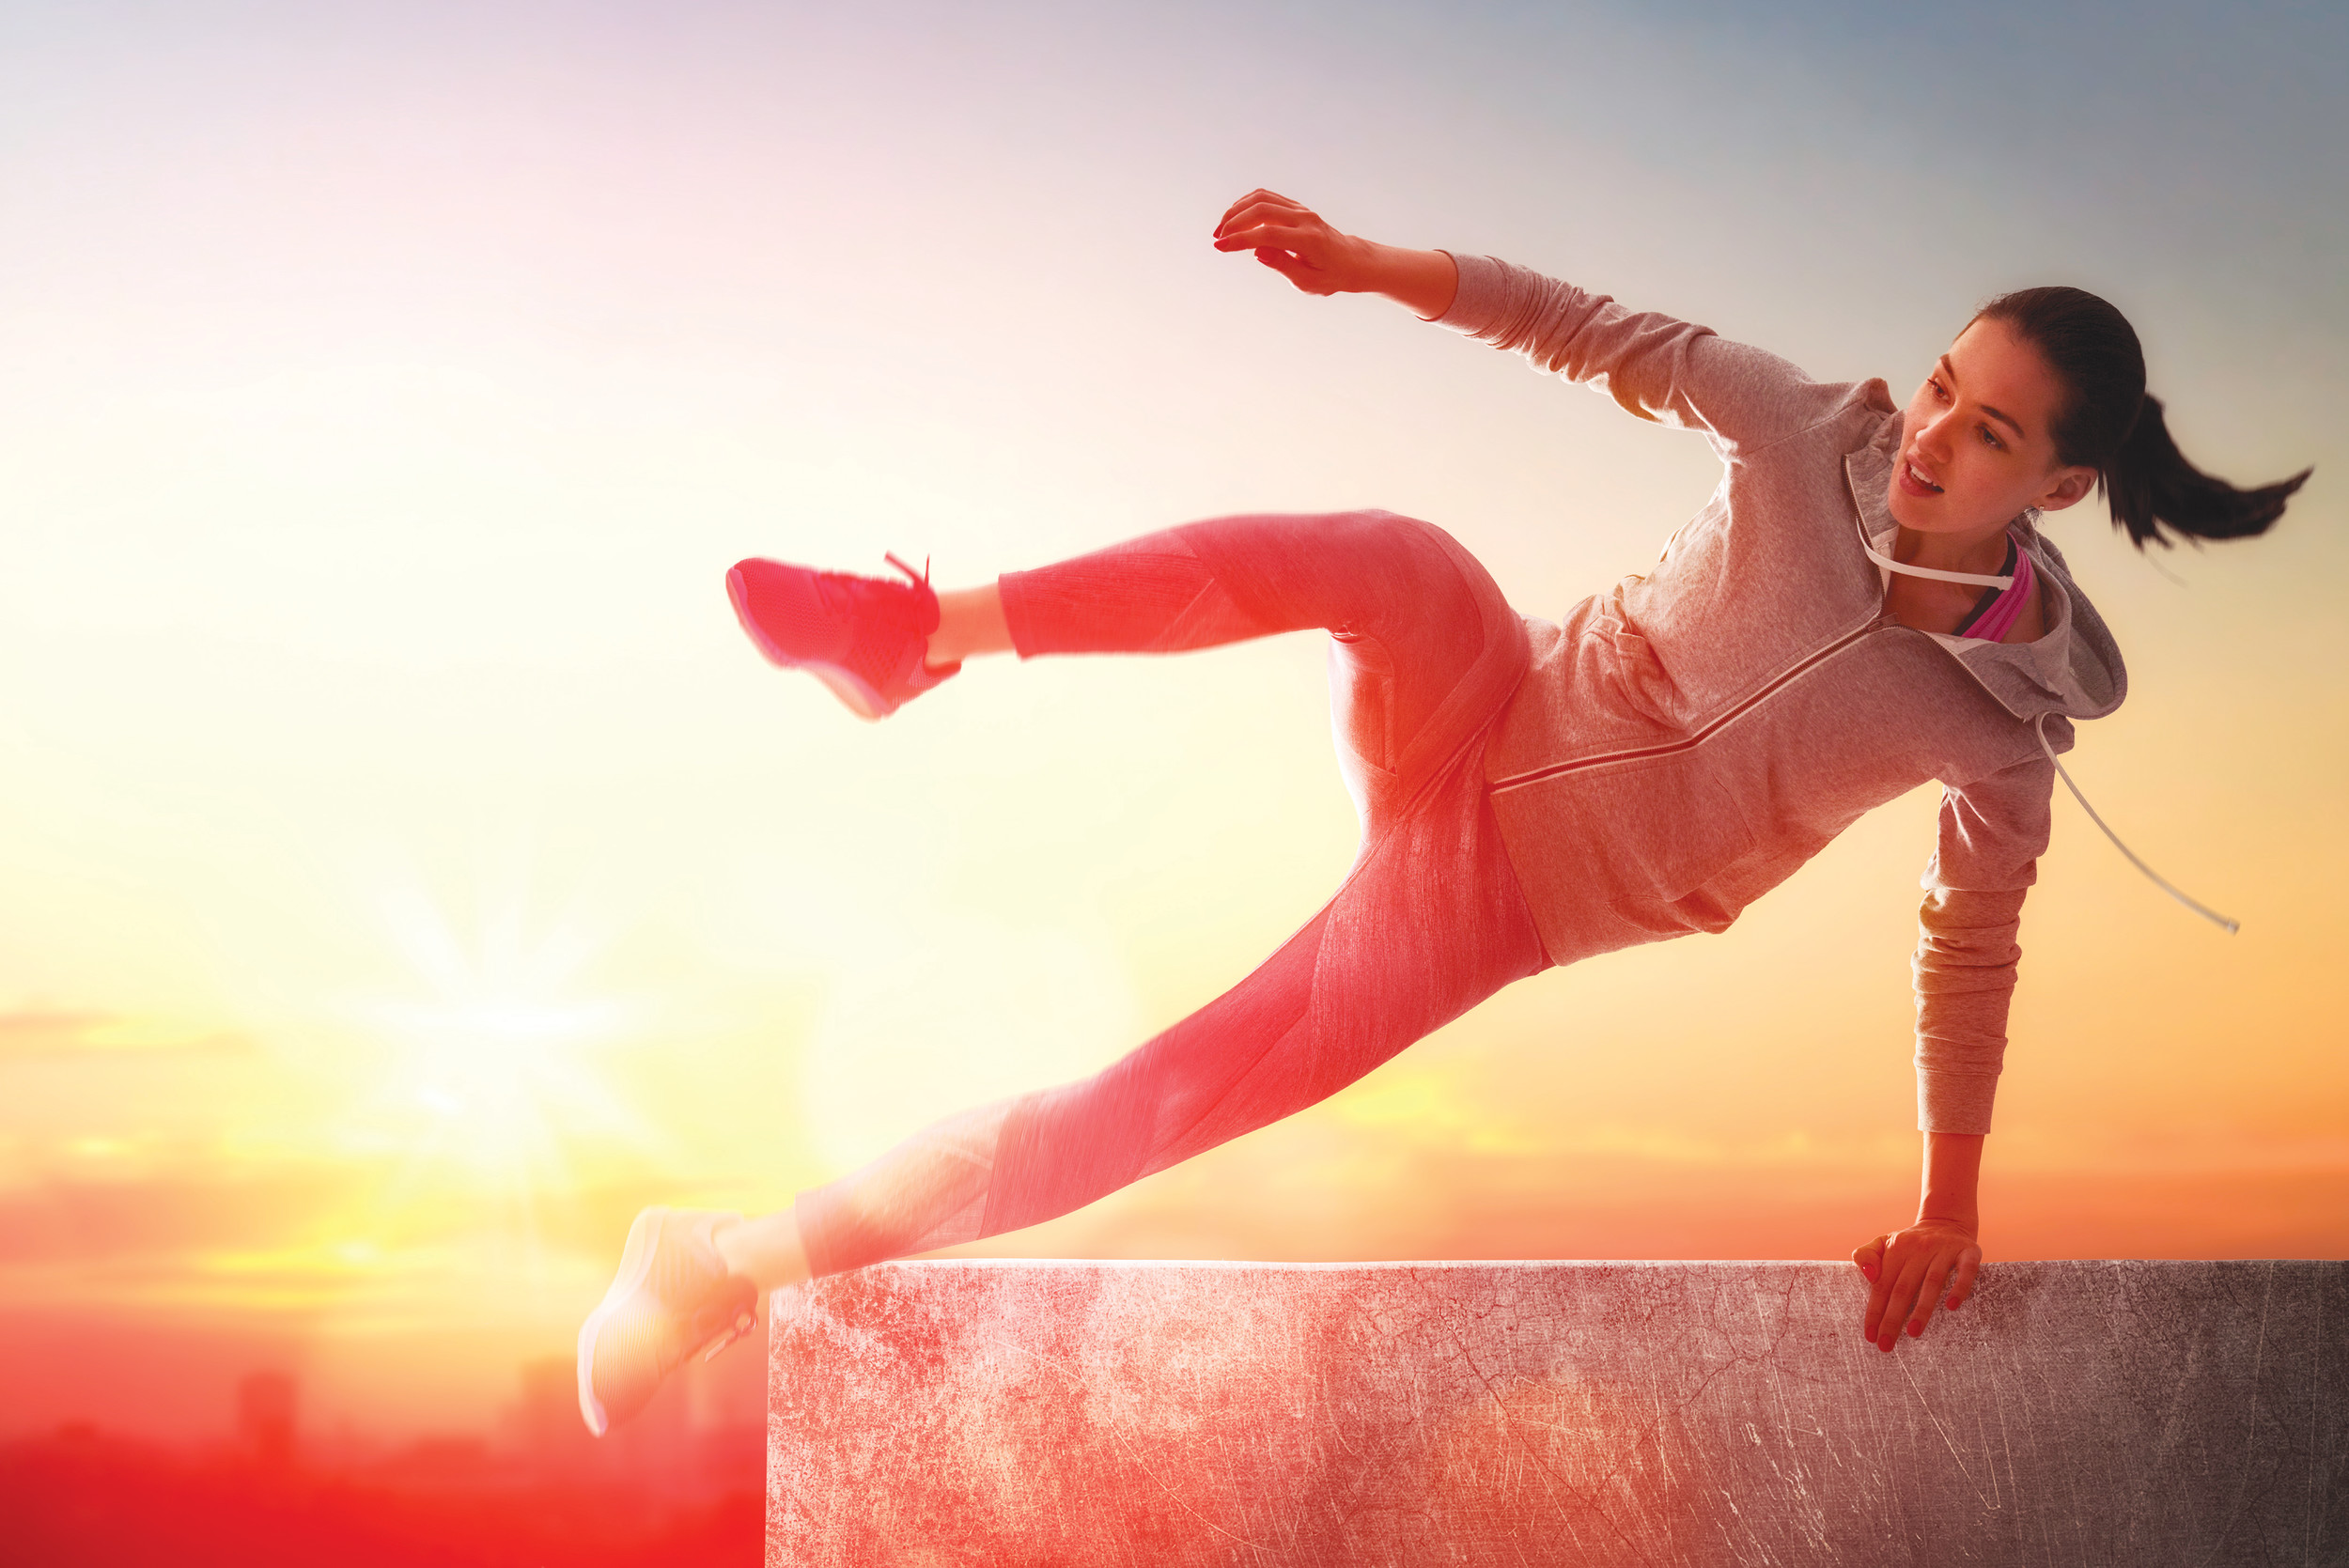 best-parkour-shoes-girl-jumping-wall